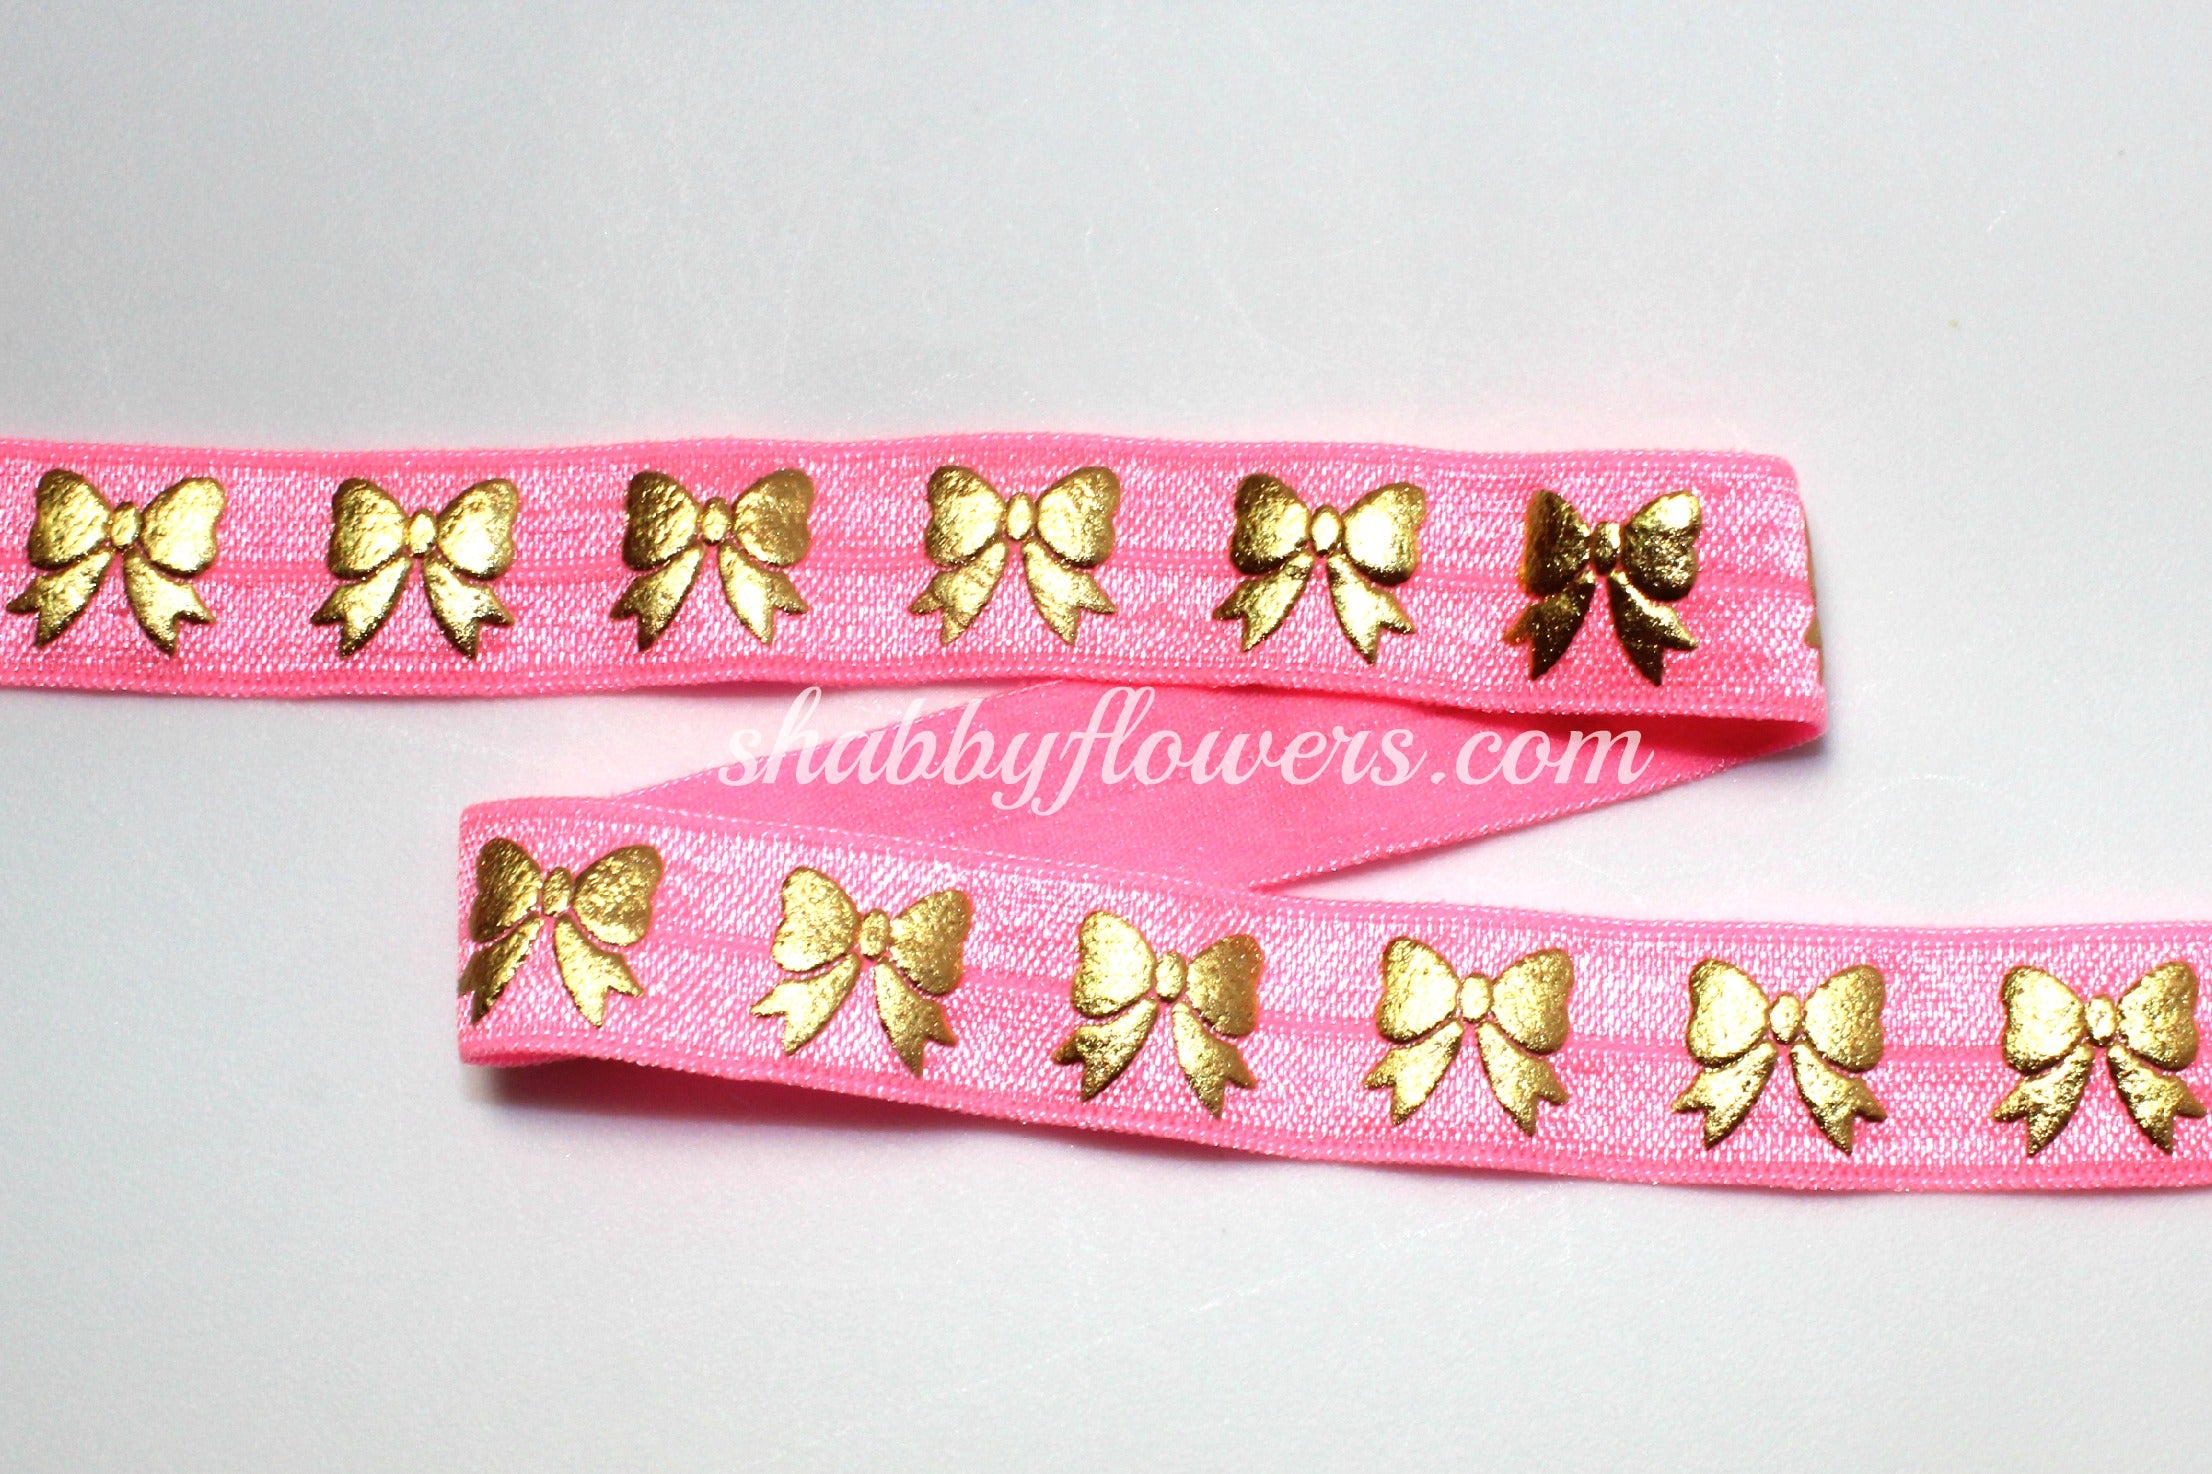 Elastic - Gold Foil Bow on Pink - shabbyflowers.com